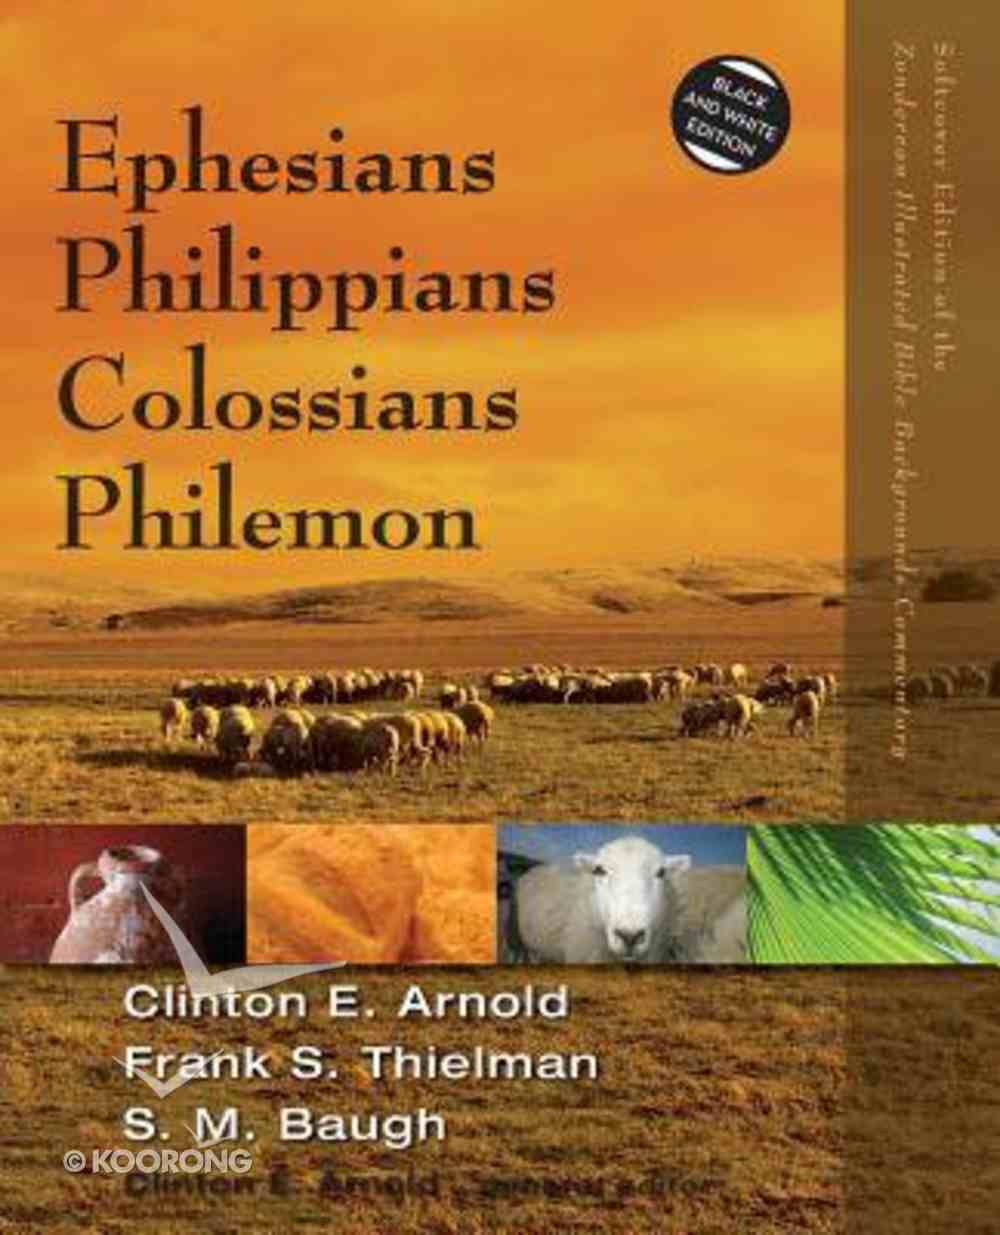 Ephesians, Philippians, Colossians, Philemon (Zondervan Illustrated Bible Backgrounds Commentary Series) Paperback